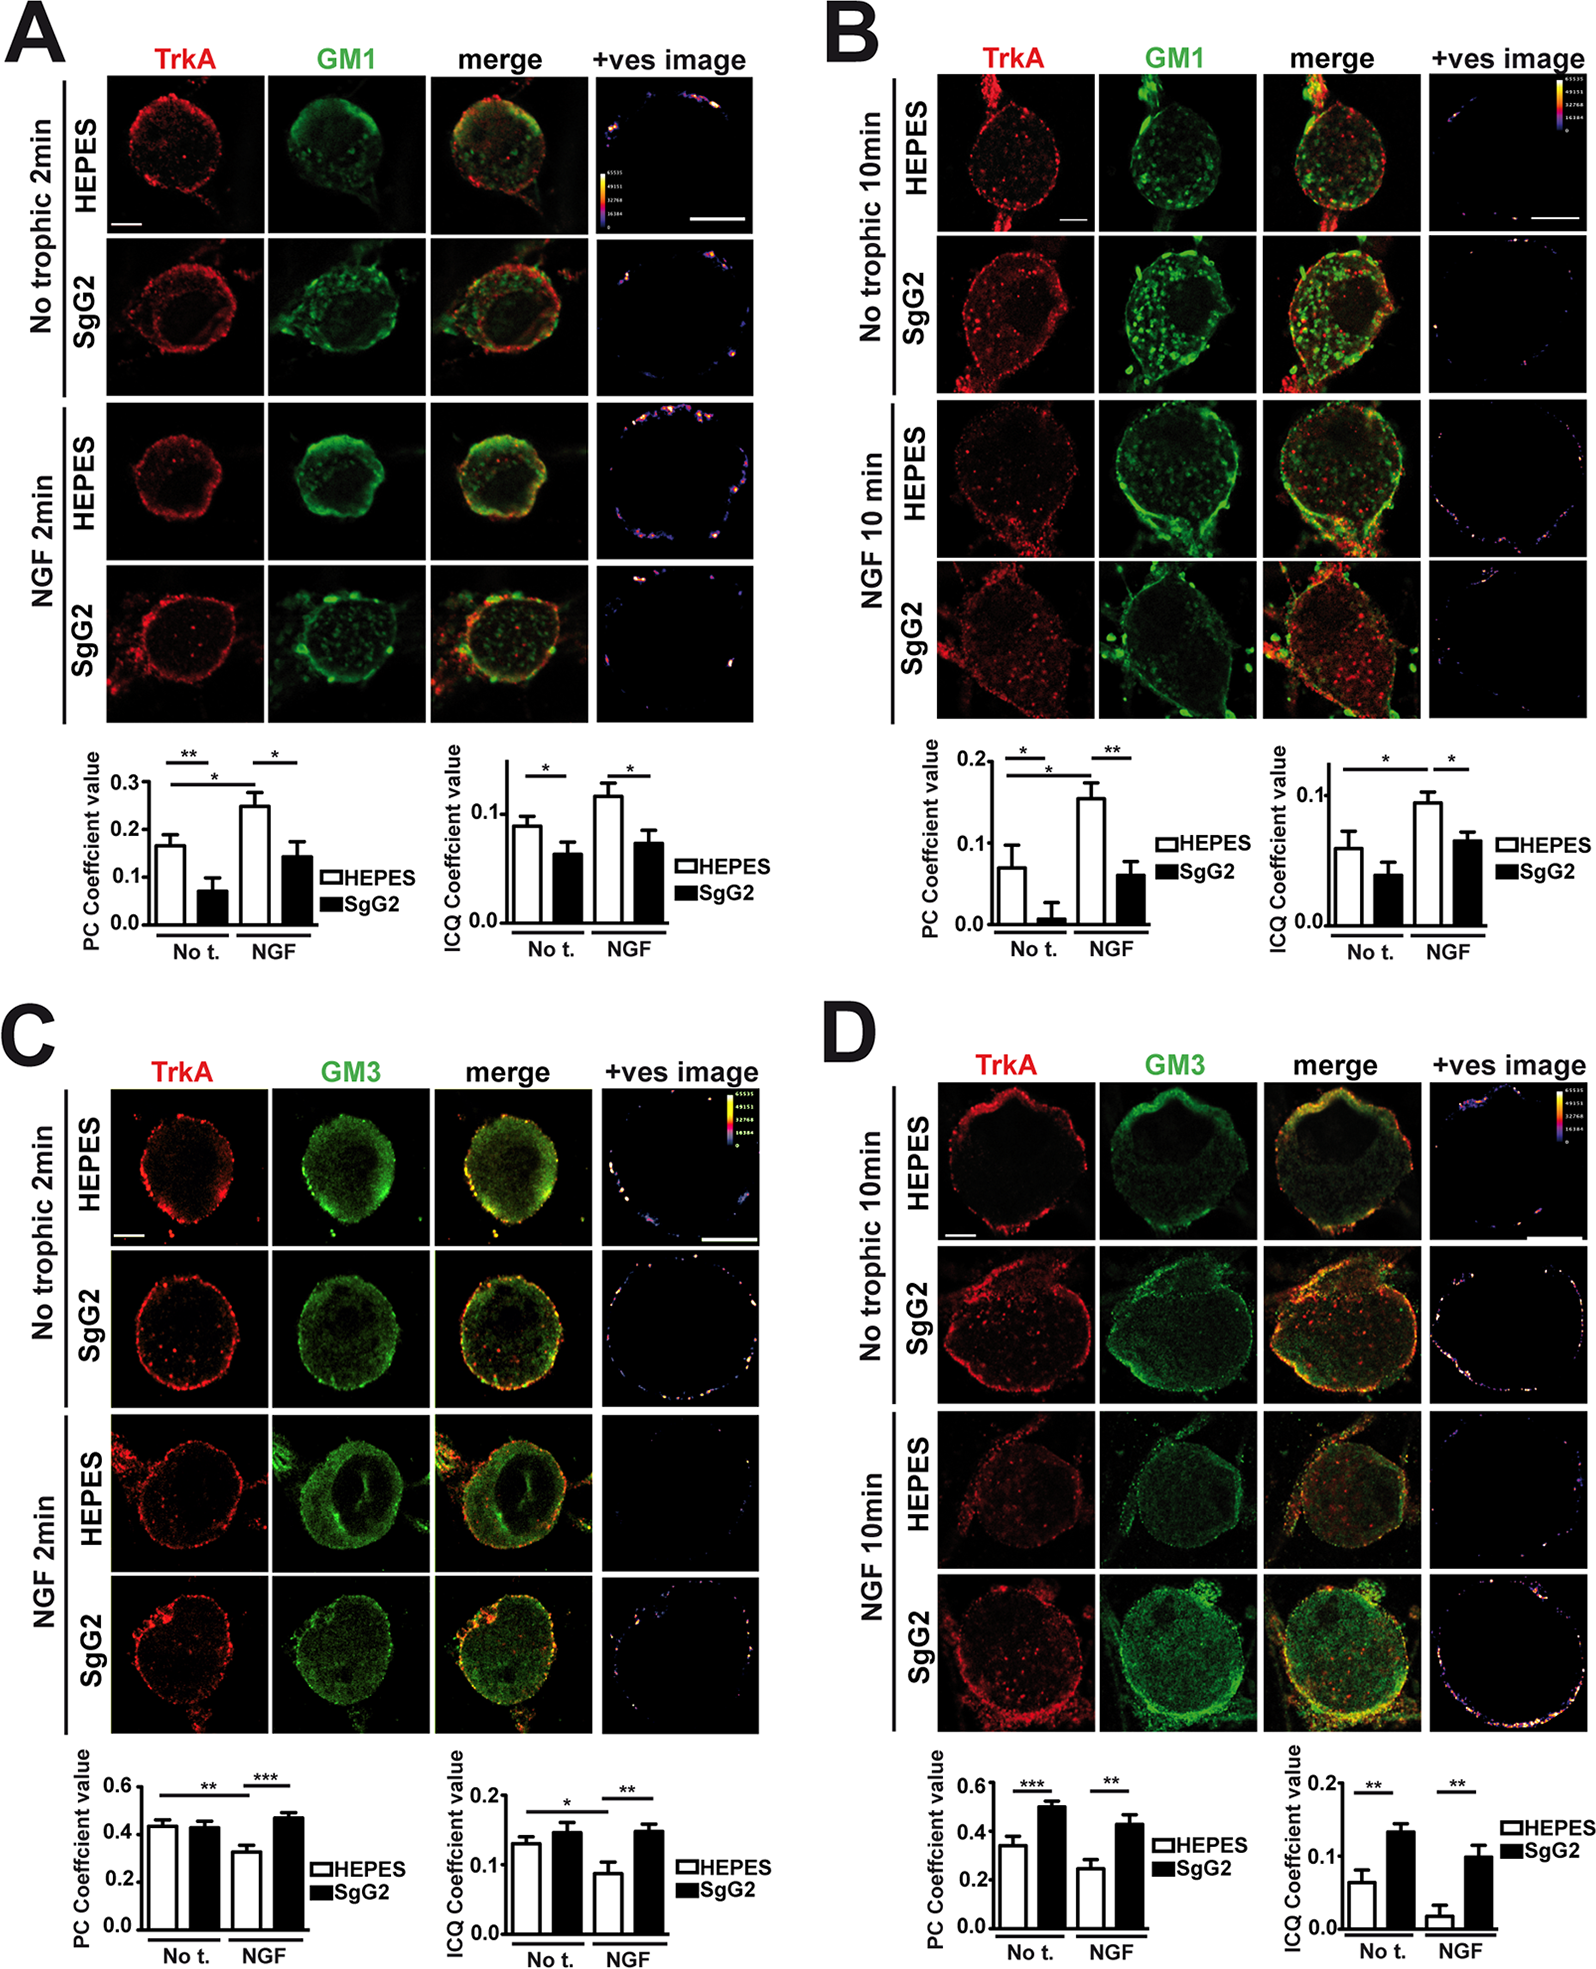 SgG2 promotes the incorporation of TrkA into different microdomains of the plasma membrane.